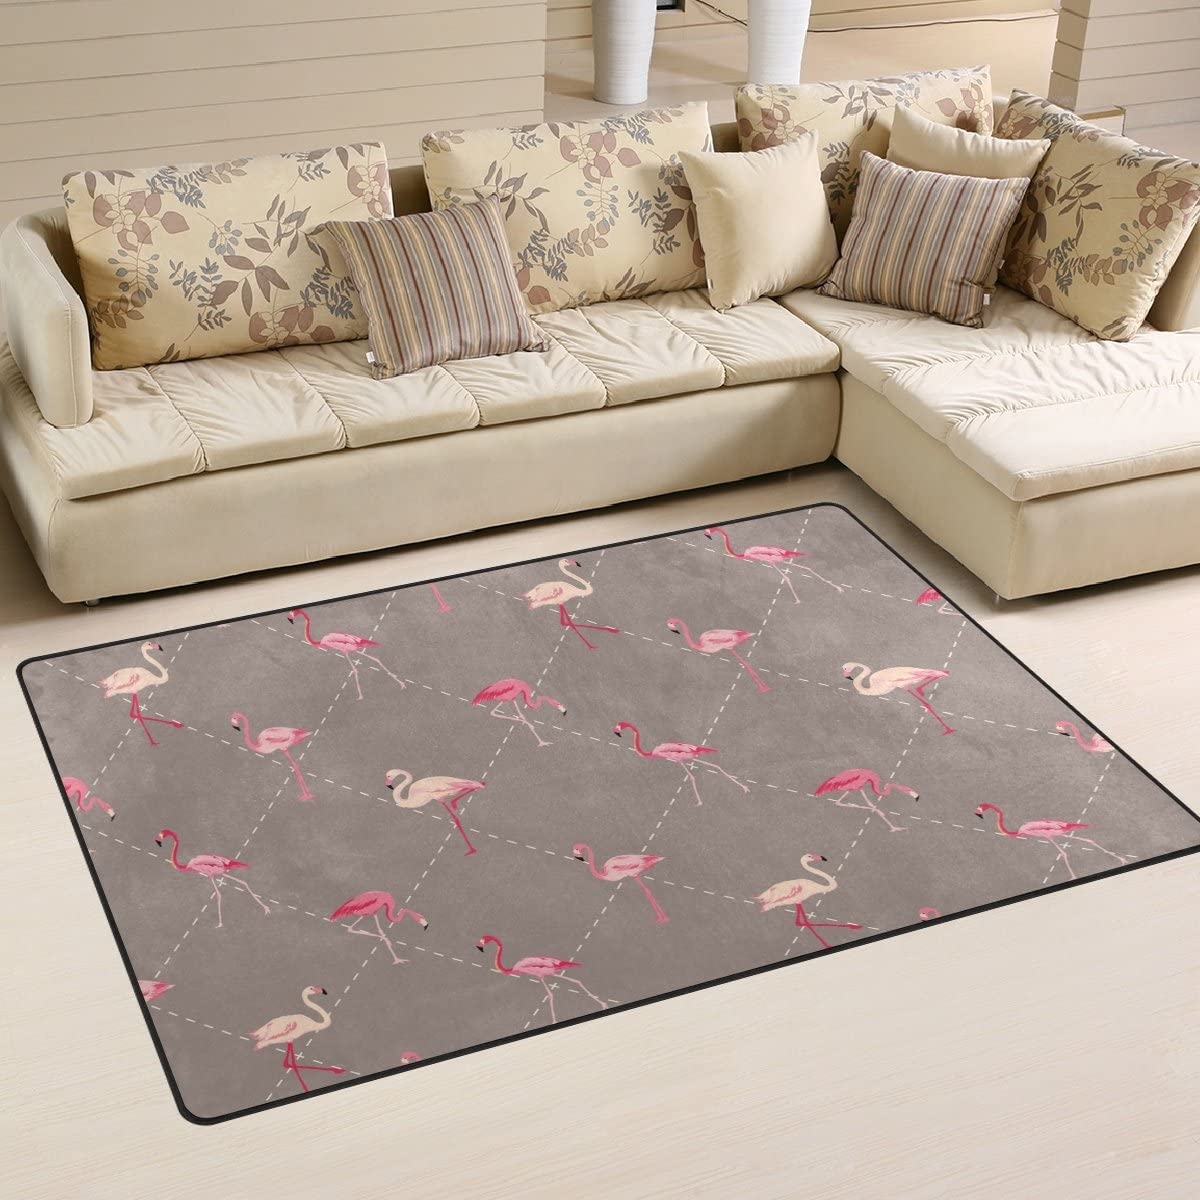 Sunlome Pink Flamingo Geometry Brown Area Rug Rugs Non-Slip Indoor Outdoor Floor Mat Doormats for Home Decor 60 x 39 inches